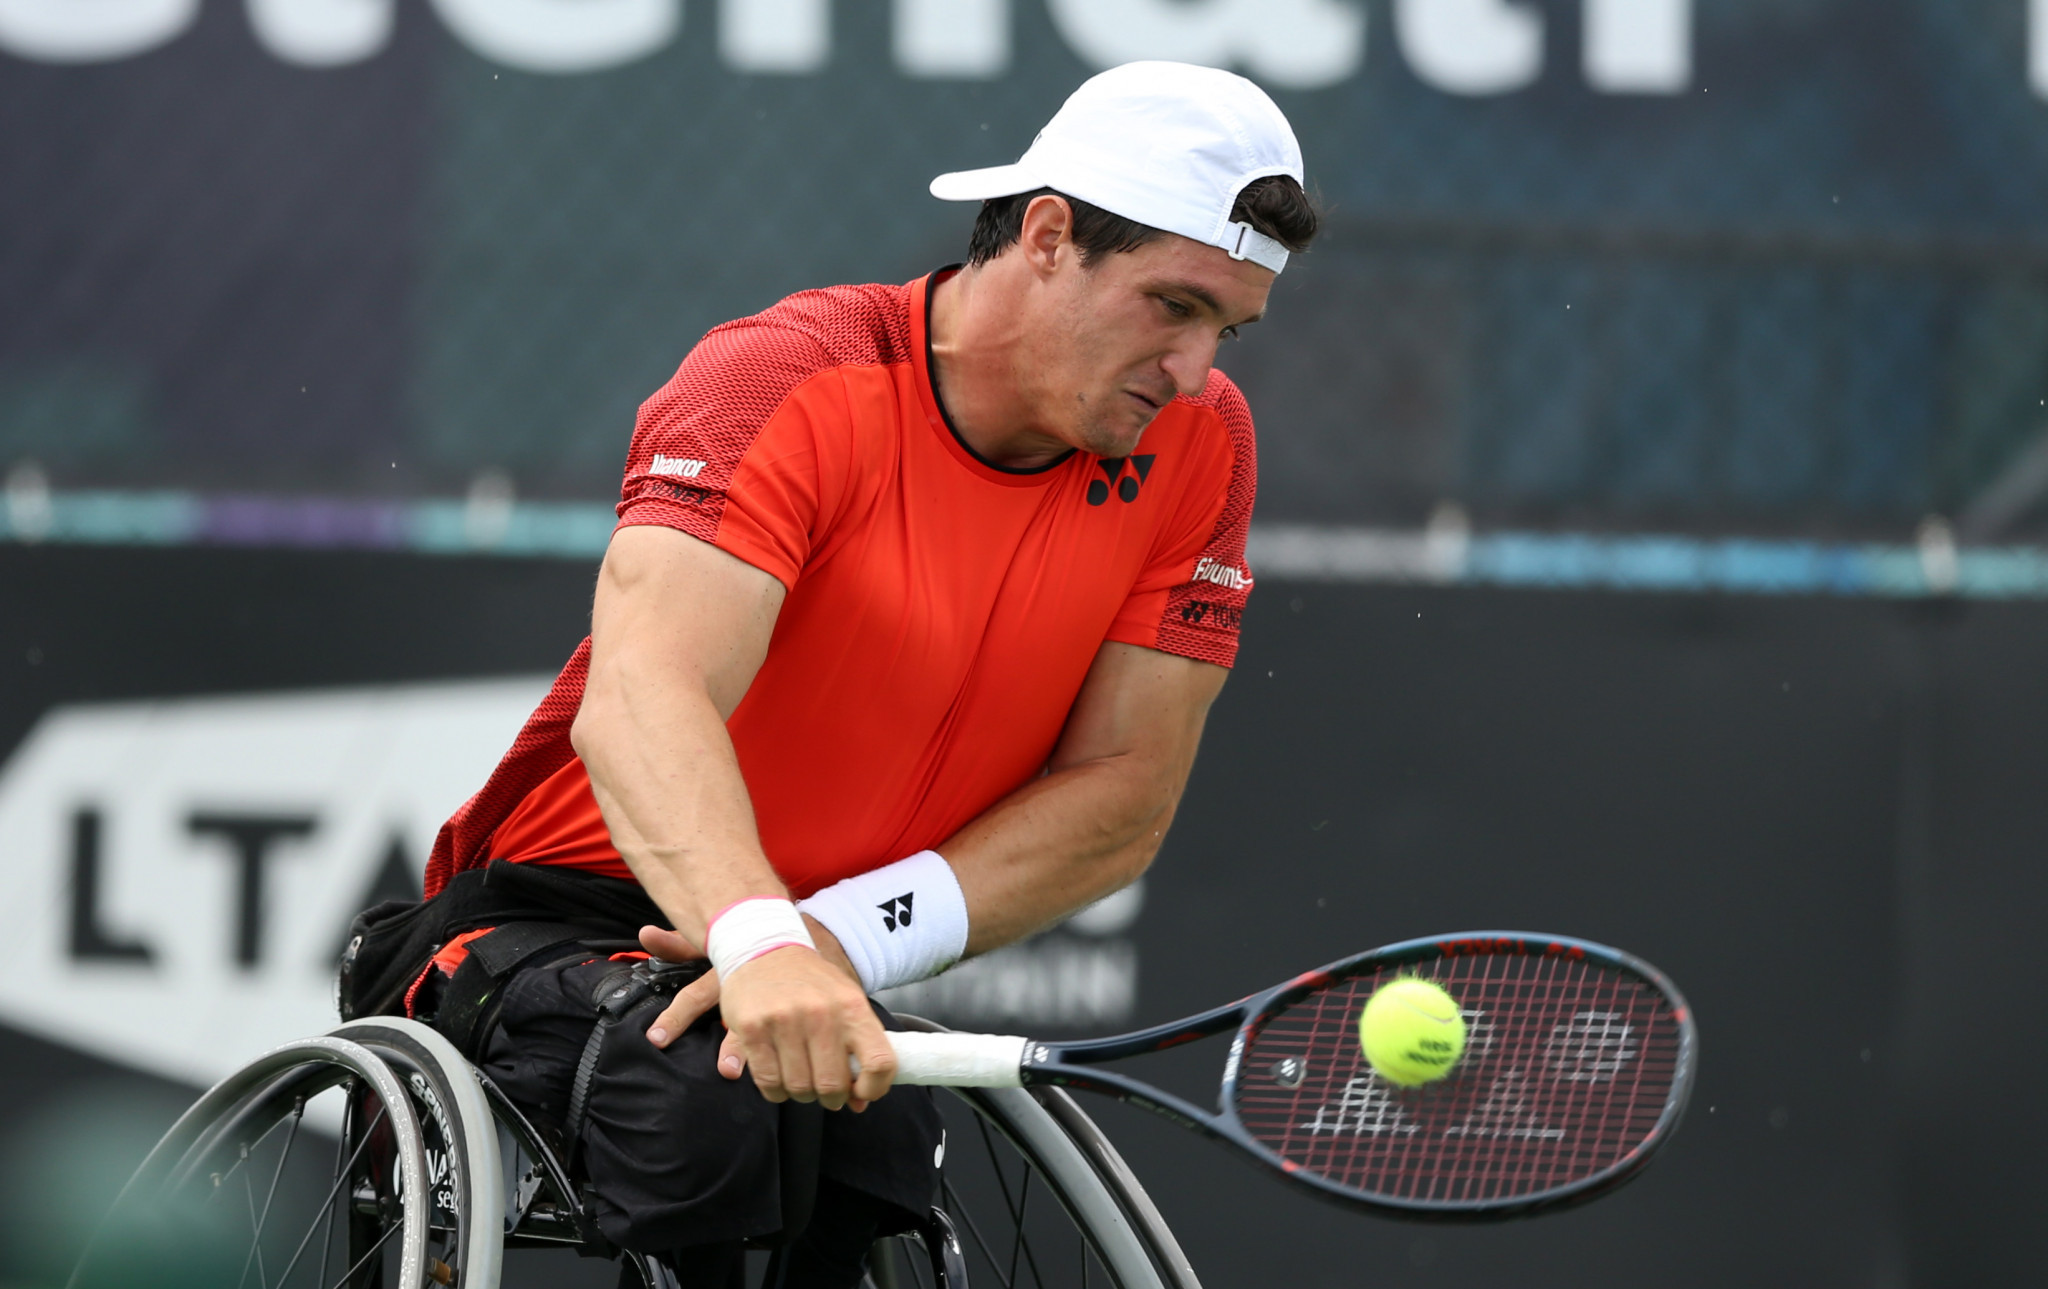 Fernández named ITF men's wheelchair world champion